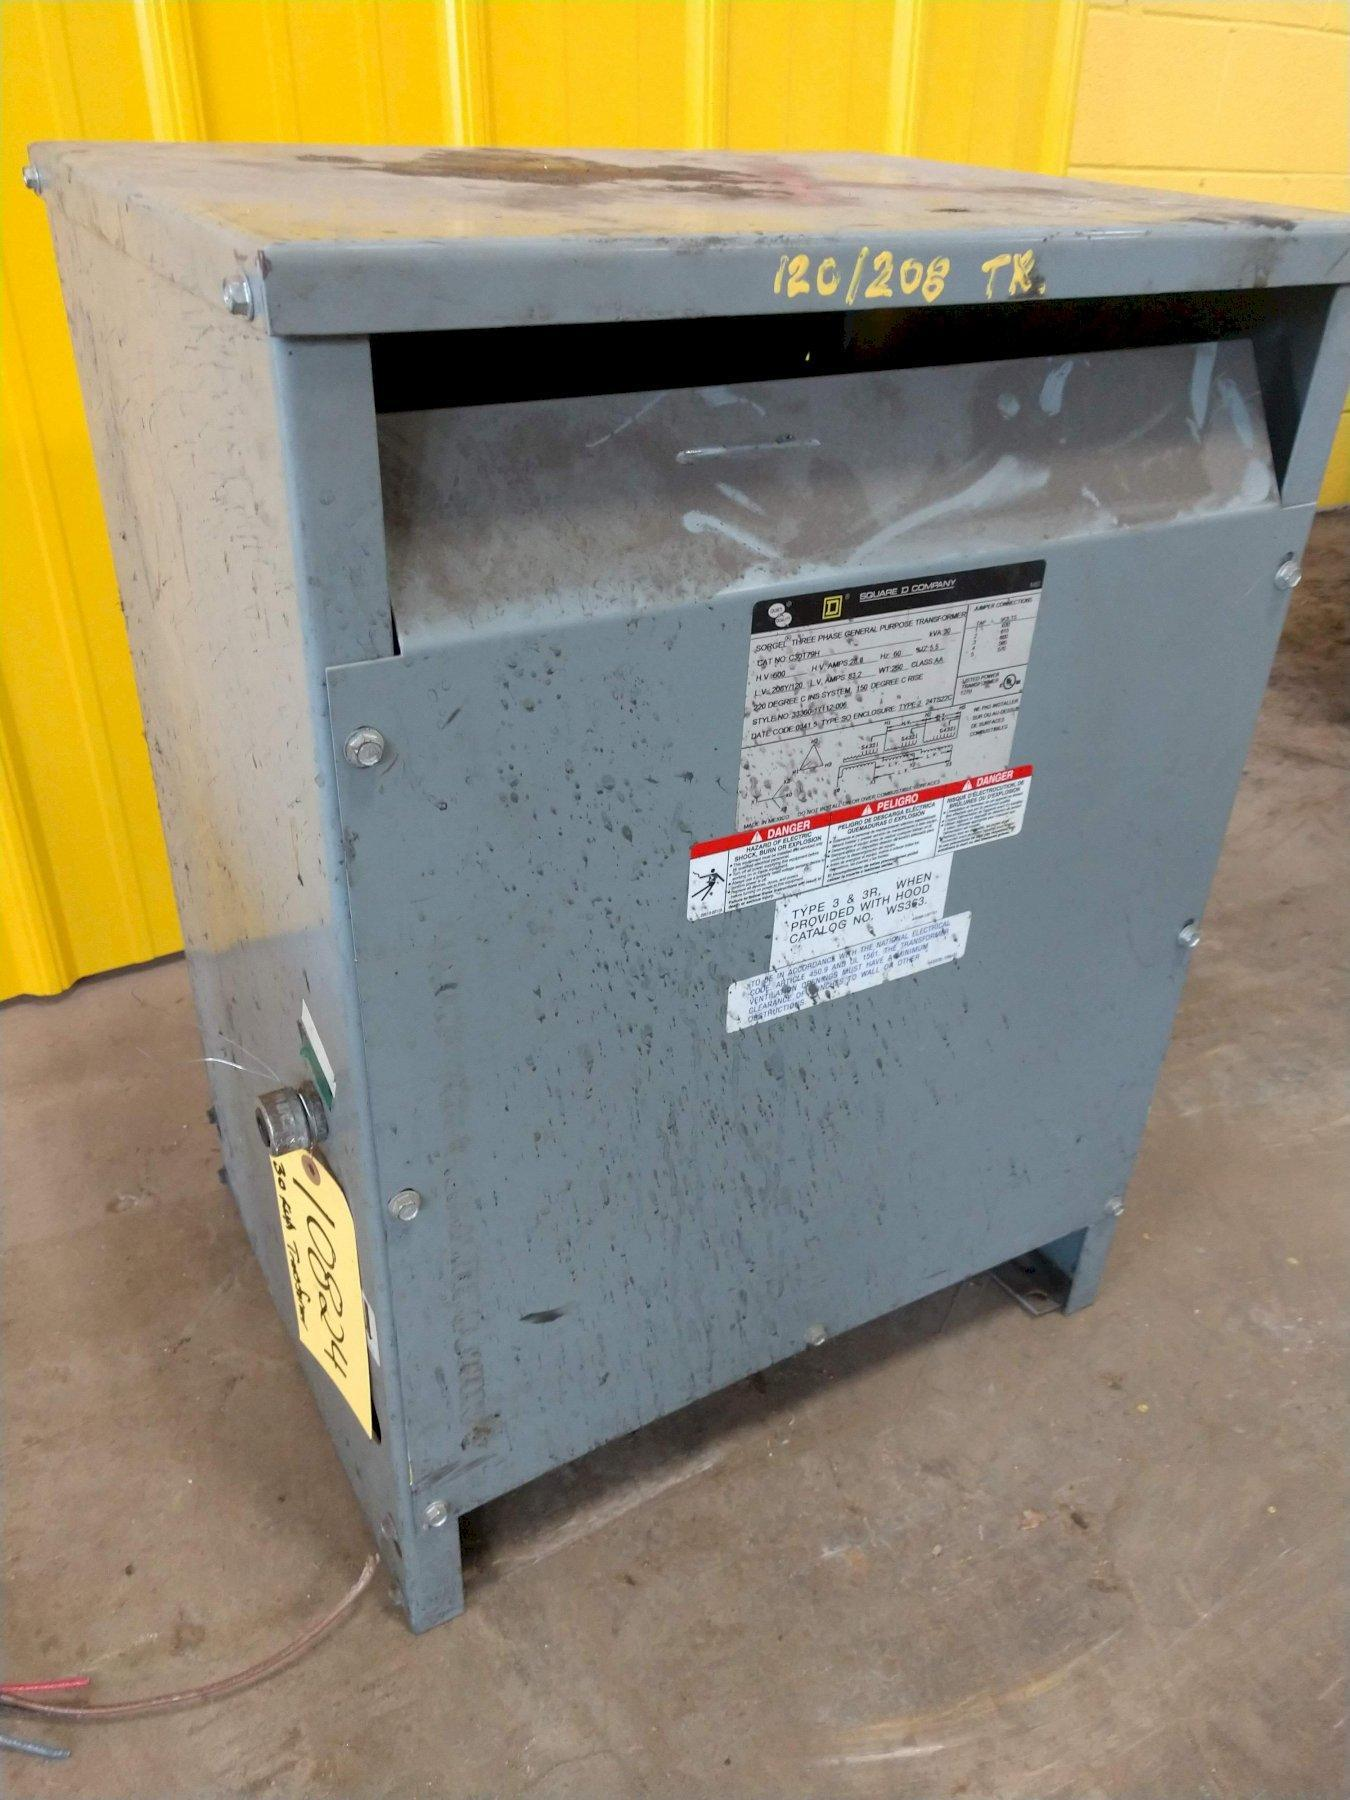 30 KVA SORGEL THREE PHASE 600 TO 208Y/120 VOLT ELECTRICAL TRANSFORMER: STOCK #10824